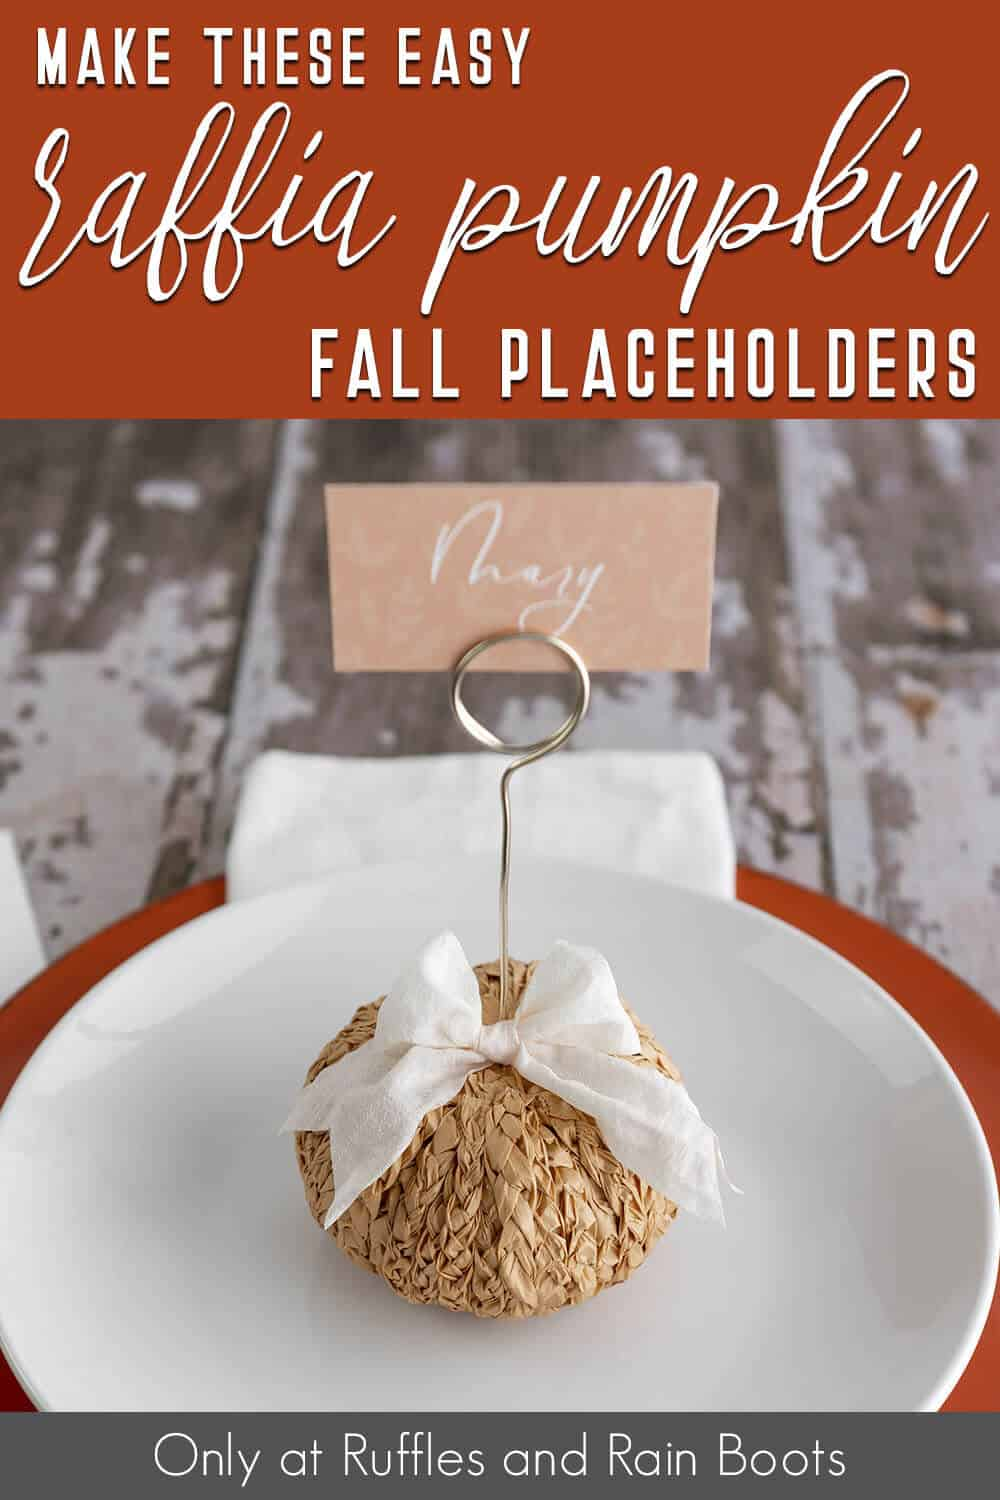 fall raffia pumpkin craft with text which reads make these easy raffia pumpkin fall placeholders